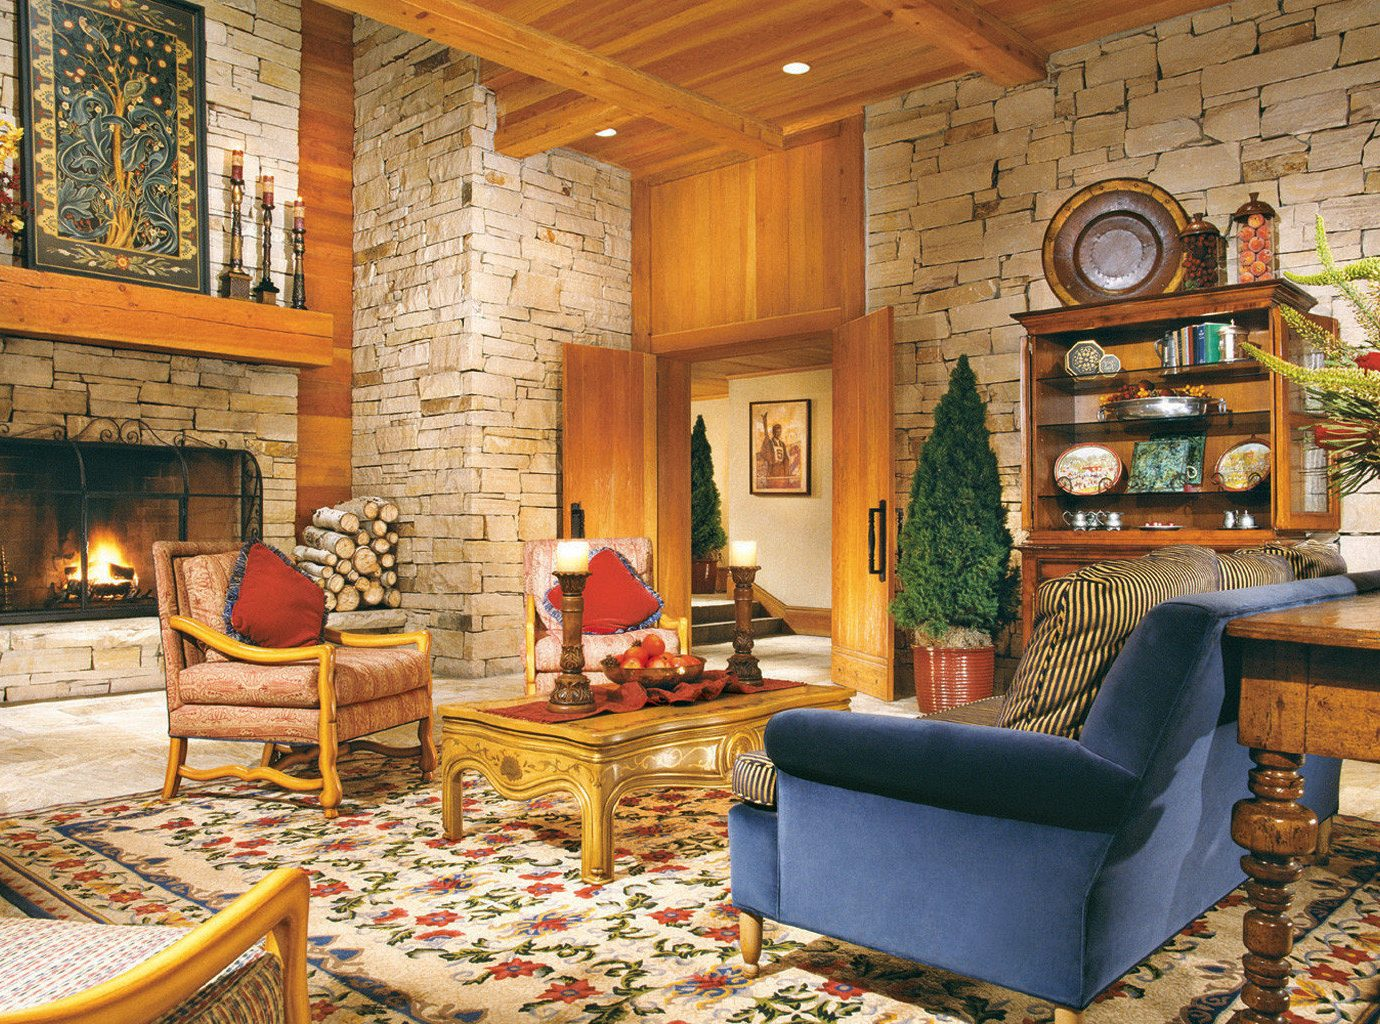 Fireplace Lodge Lounge Rustic living room property home cottage farmhouse log cabin mansion recreation room